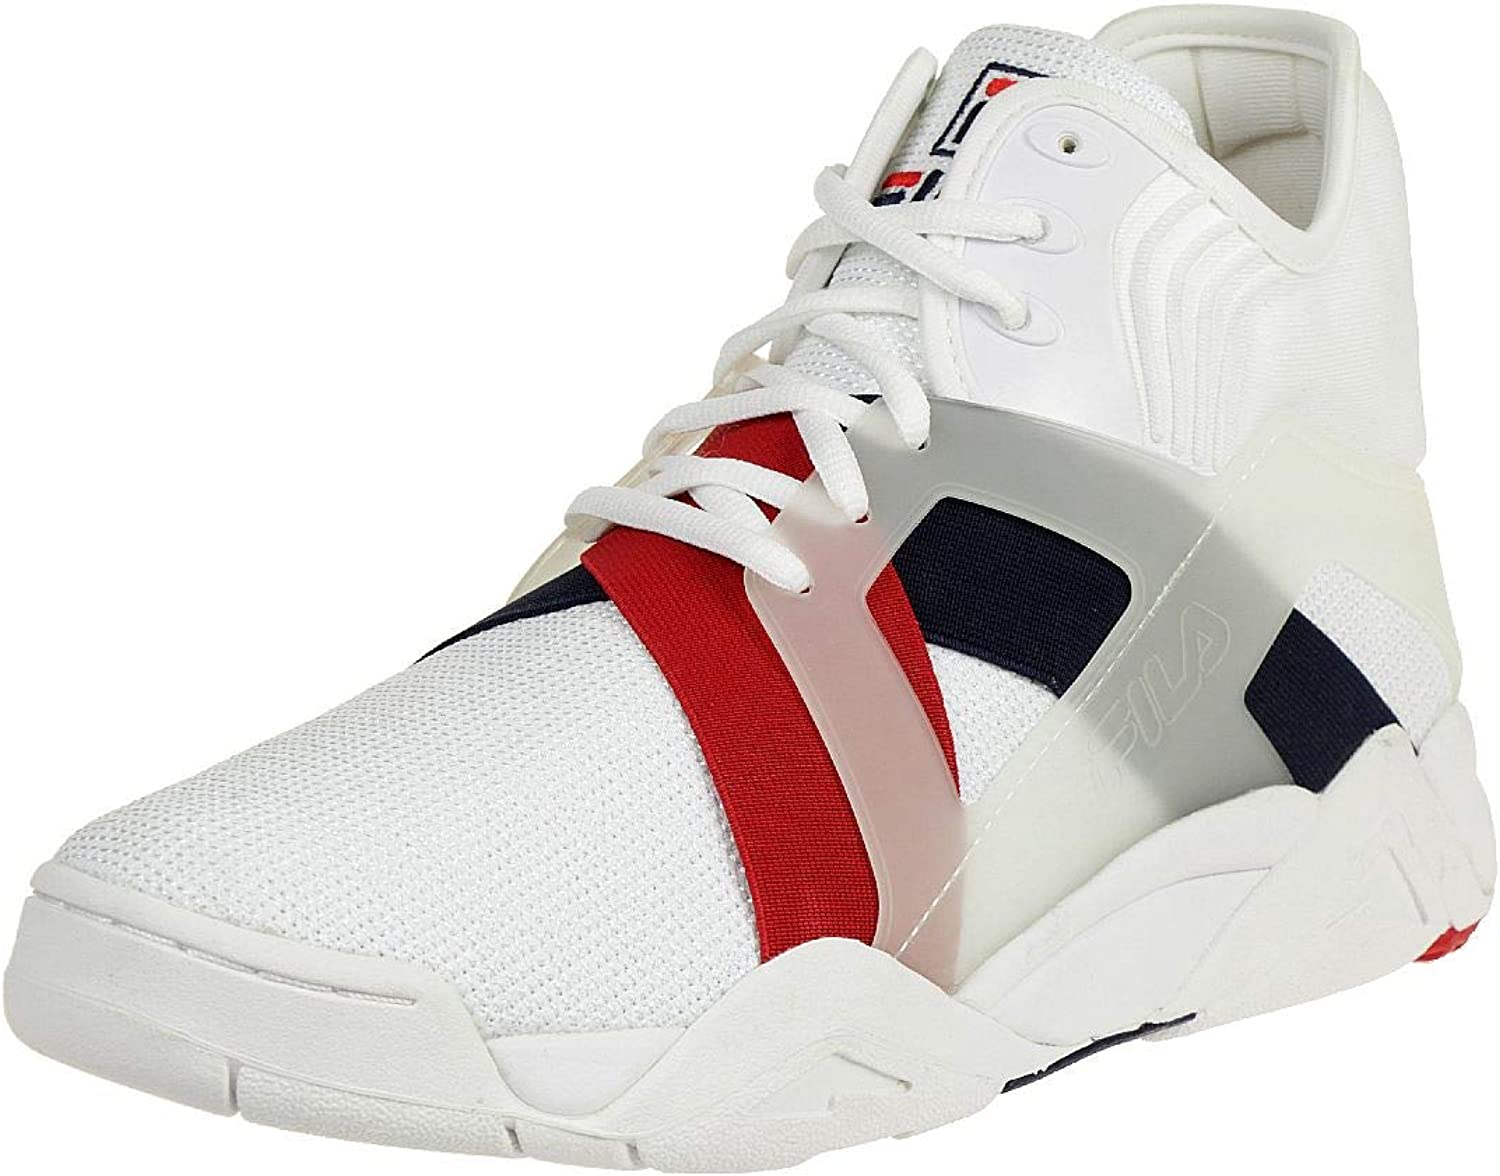 Fila The cage 17 White   Fila Navy   Fila Red 1BM00026125, Trainers